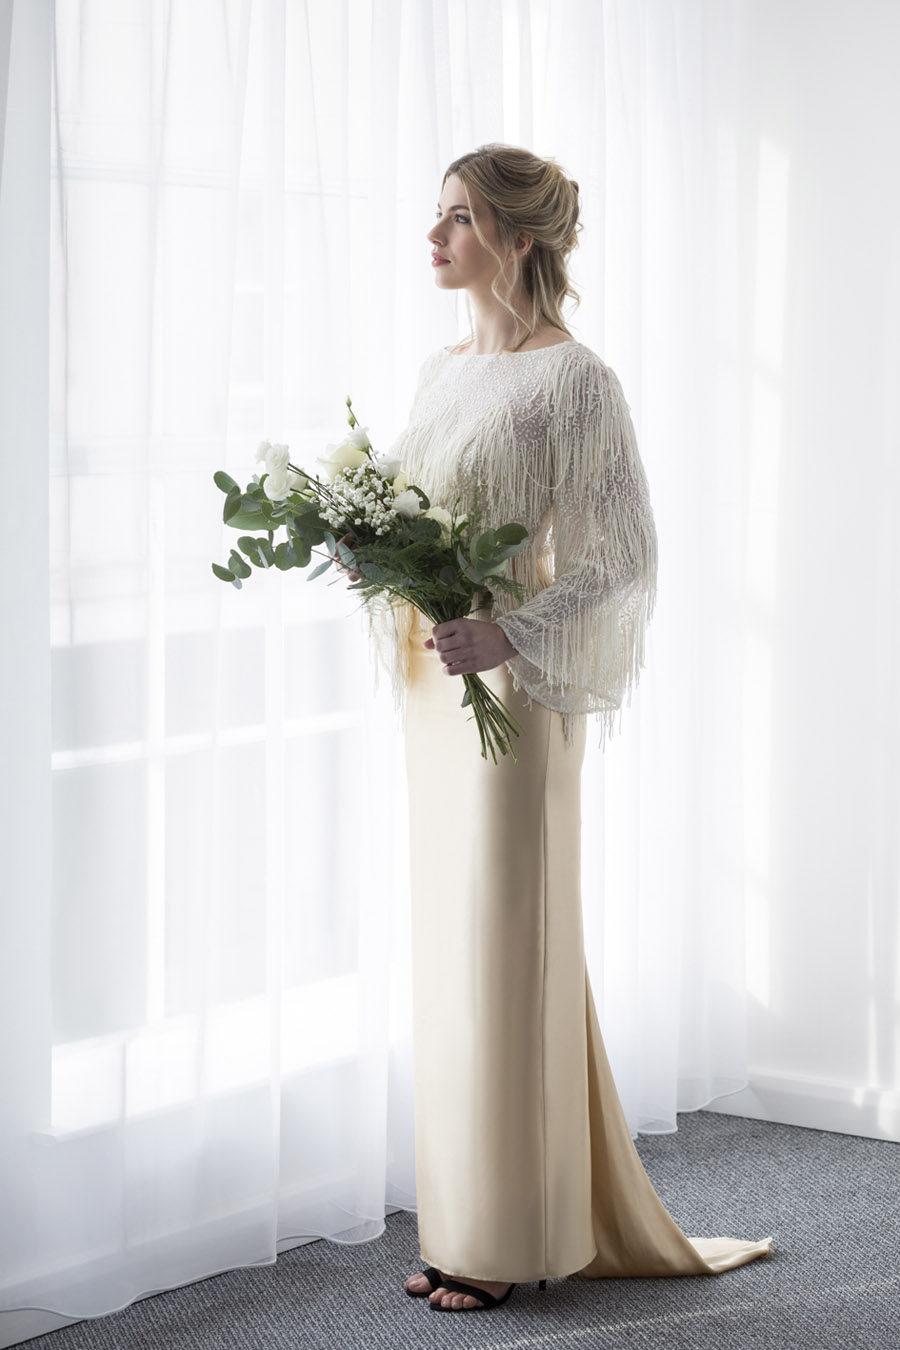 Sheradon Dublin Photography - dresses by Poppy Perspective on the English Wedding Blog (2)